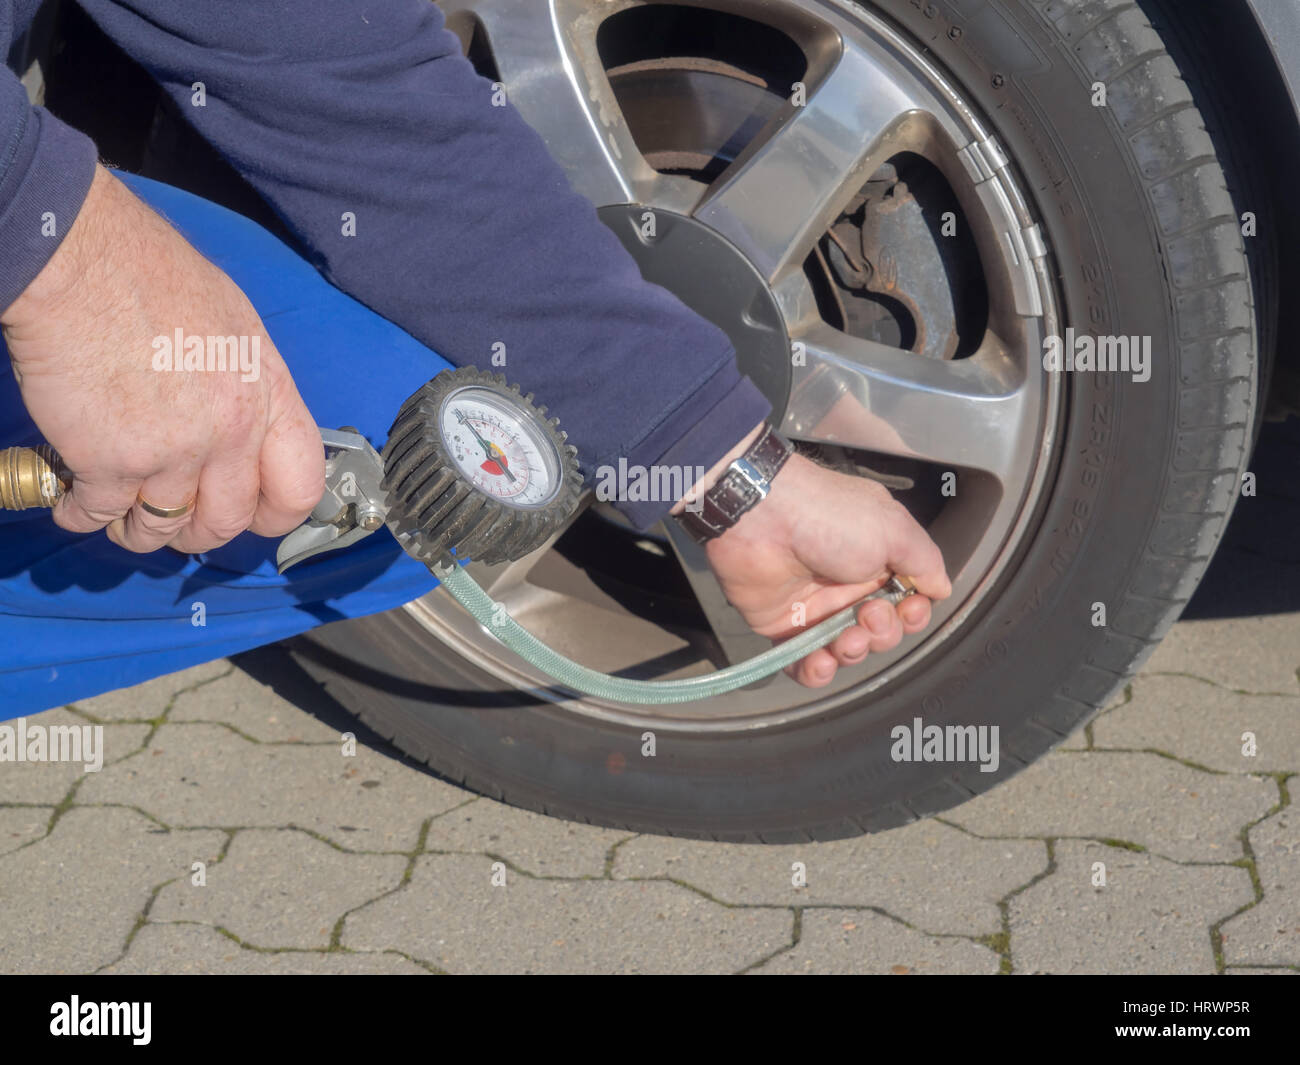 A man is measuring the air pressure of the tire of a car - Stock Image